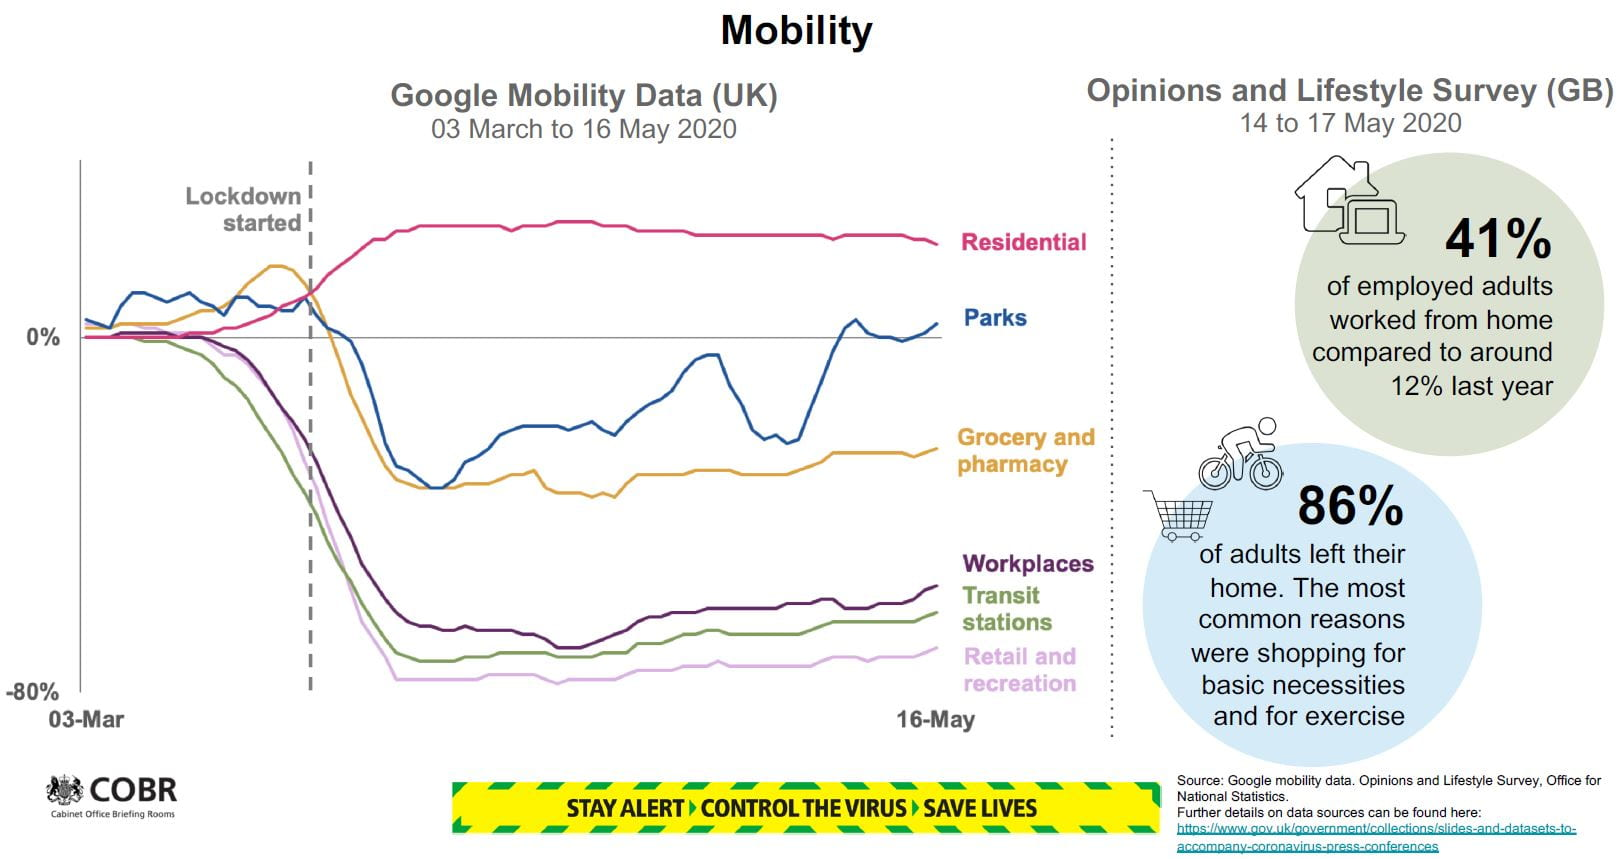 Mobility slide showing Google Mobility Data (UK)